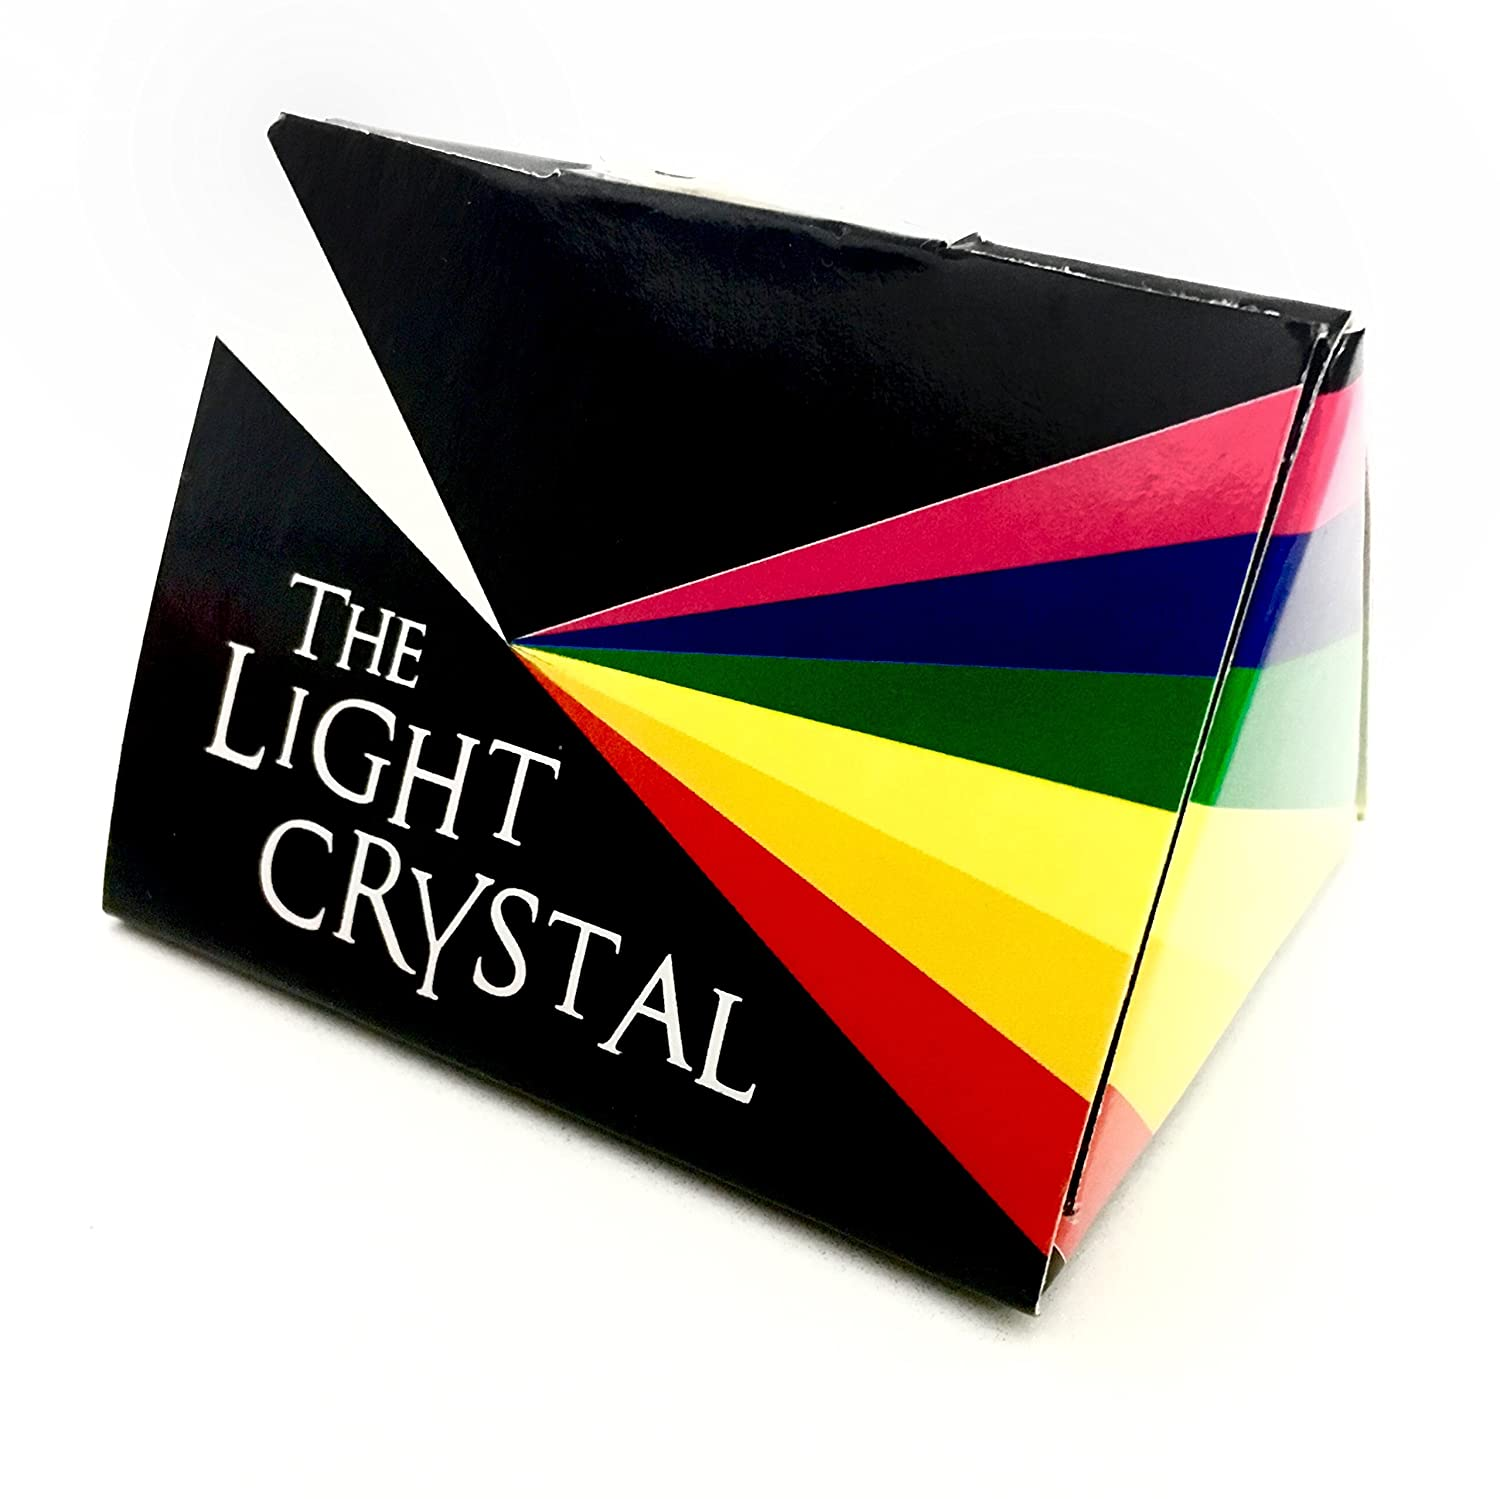 2.5 Equilateral Optical Glass Prism